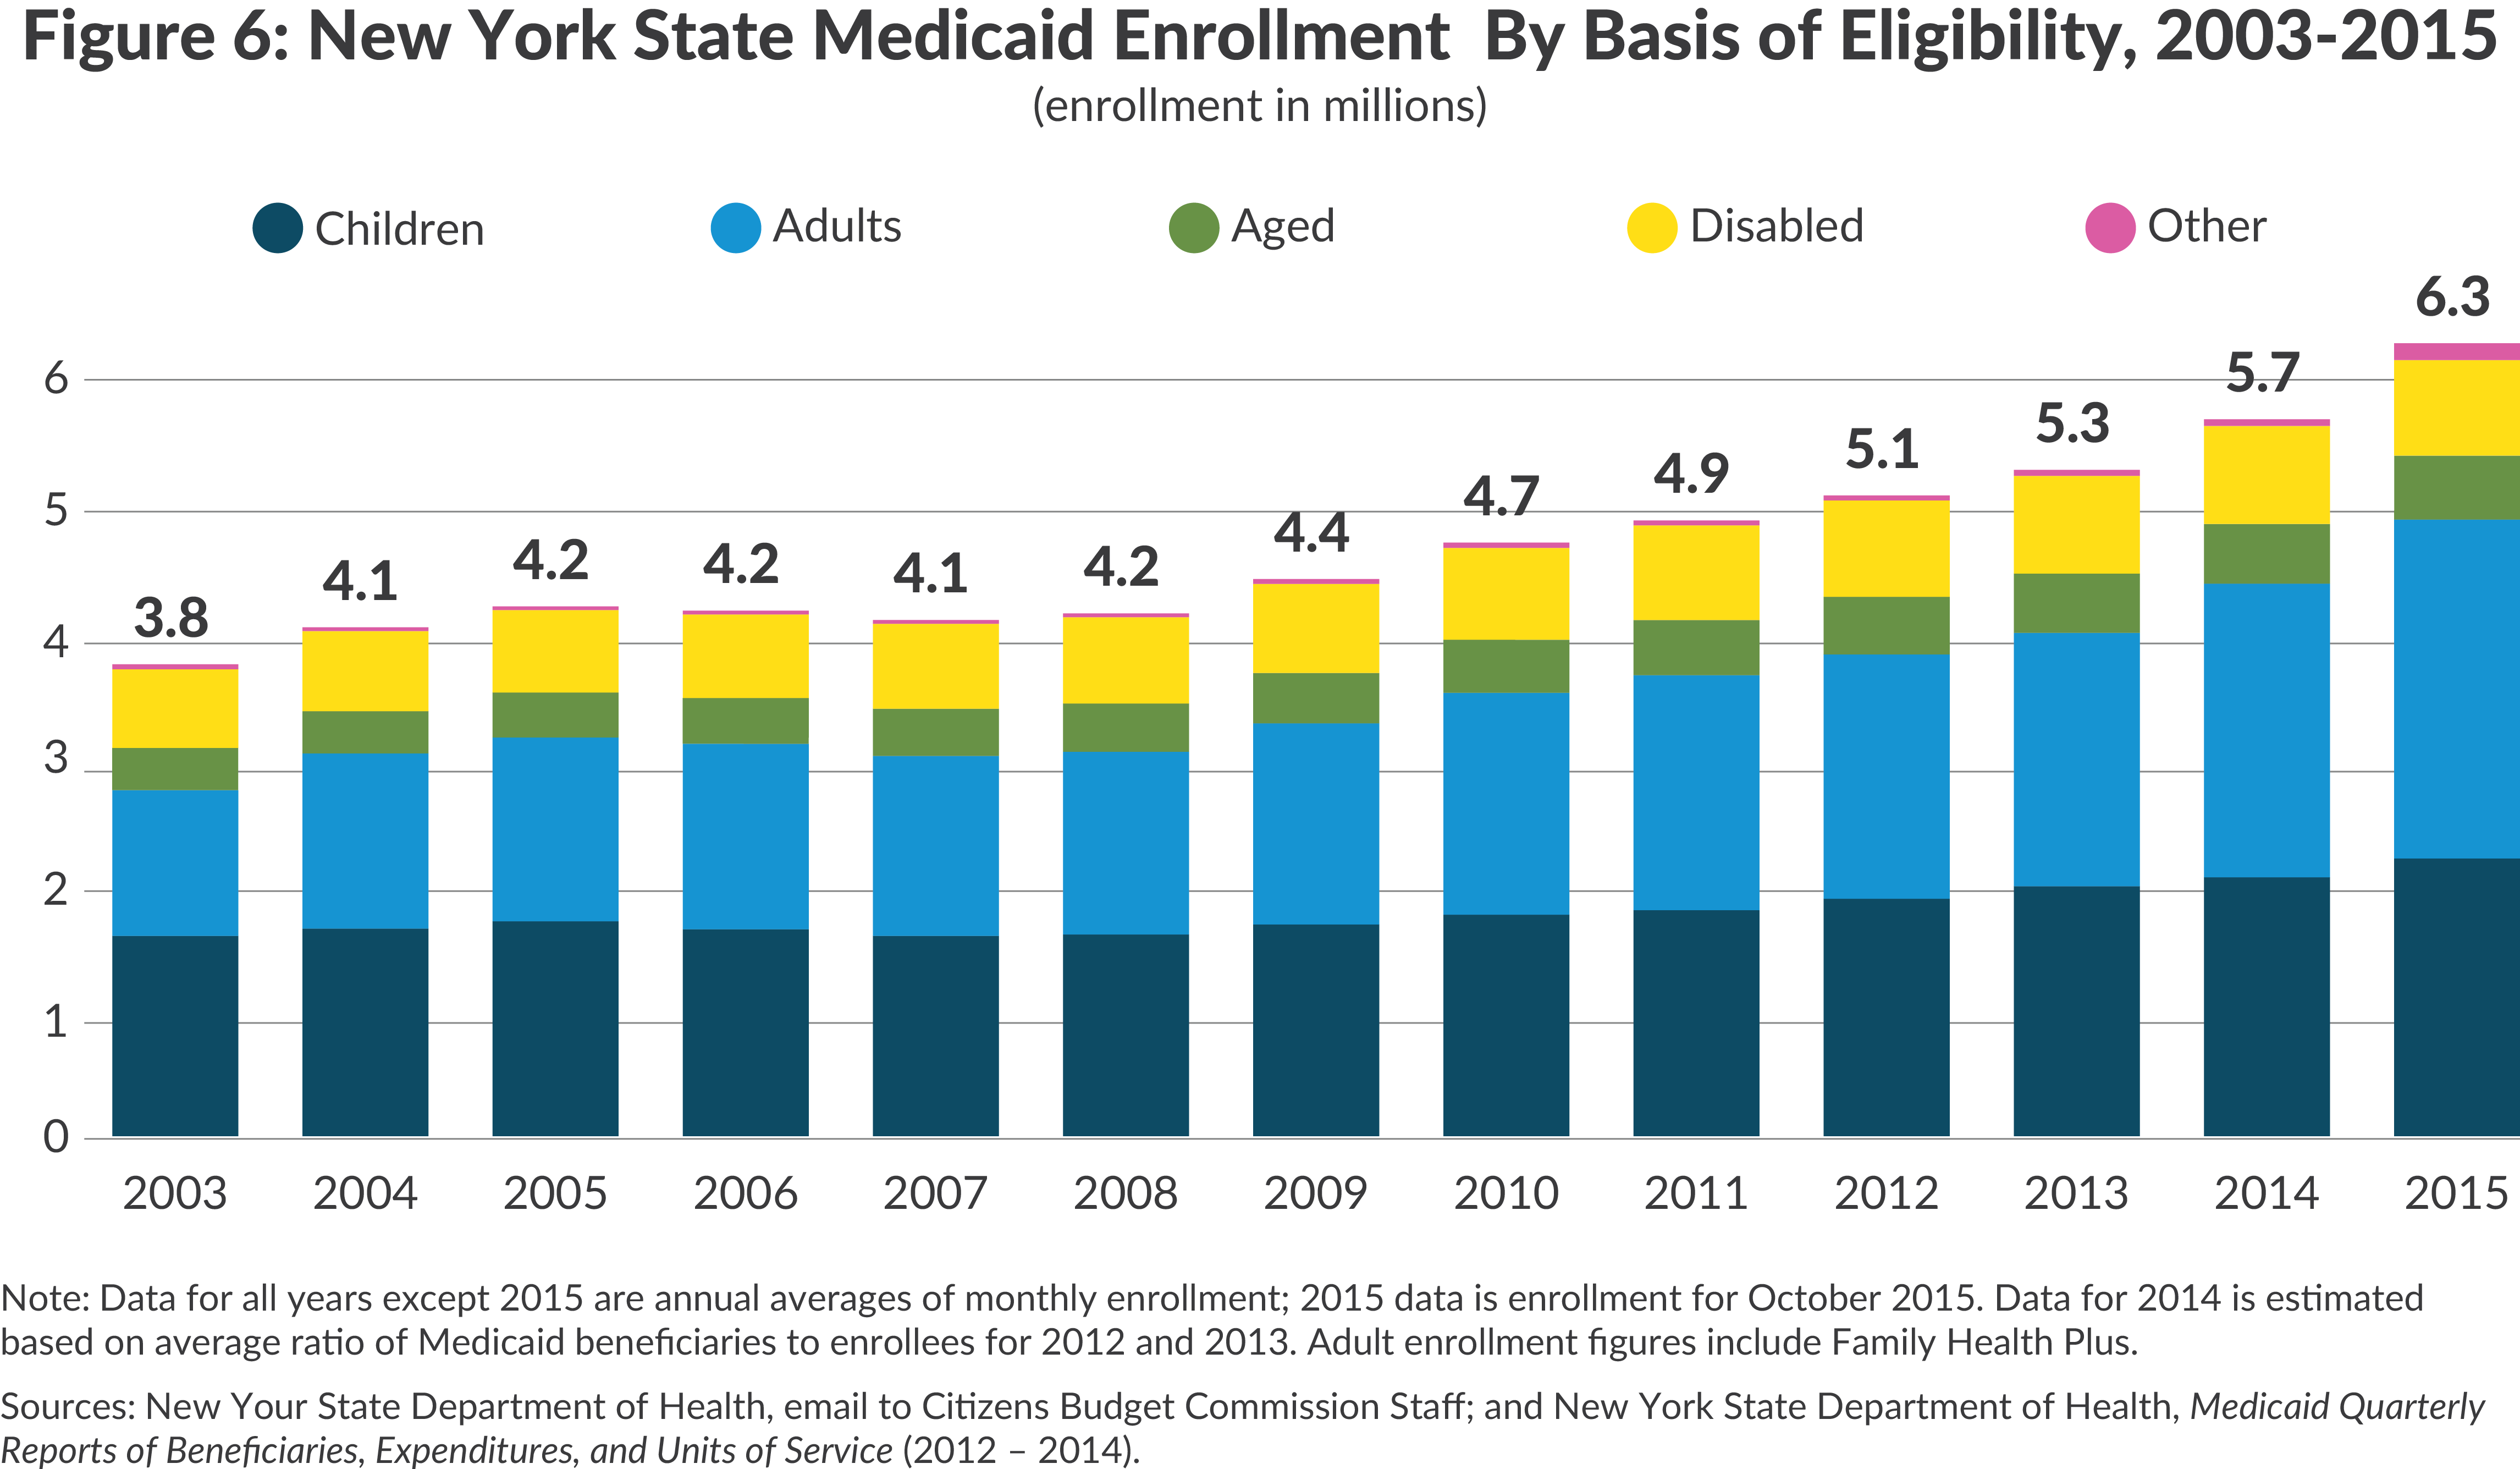 NY State enrollment by basis of eligibility